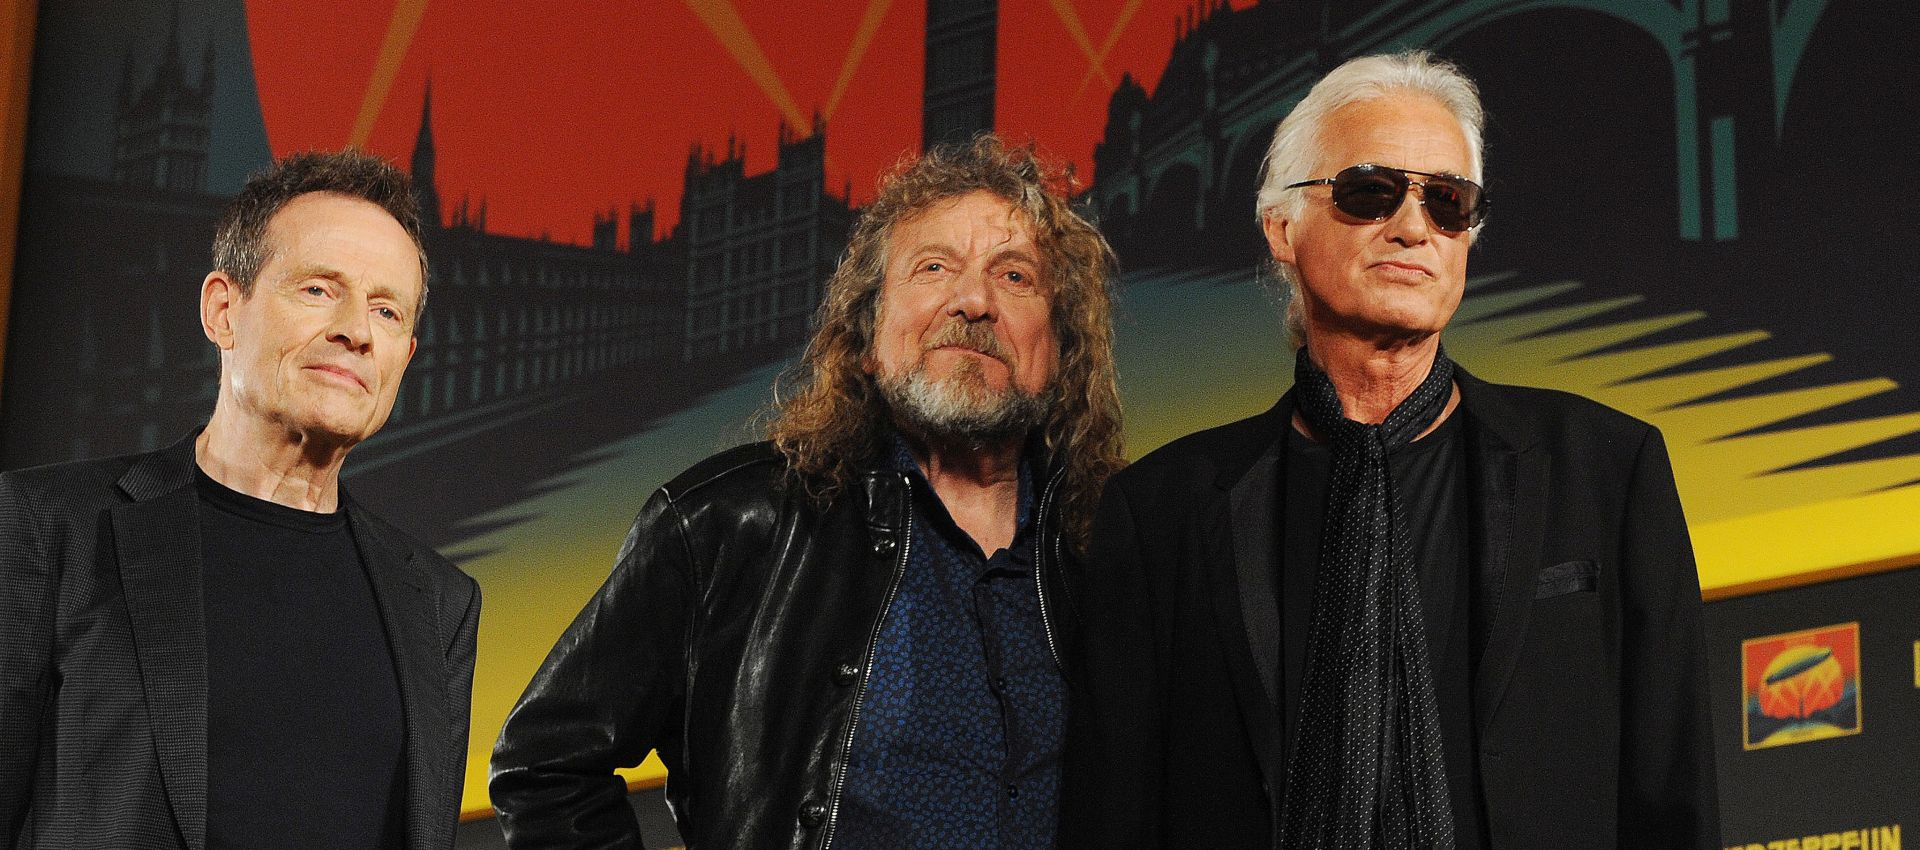 VIDEO: PLANT I PAGE MORAJU NA SUD Led Zeppelin plagirao 'Stairway to Heaven'?